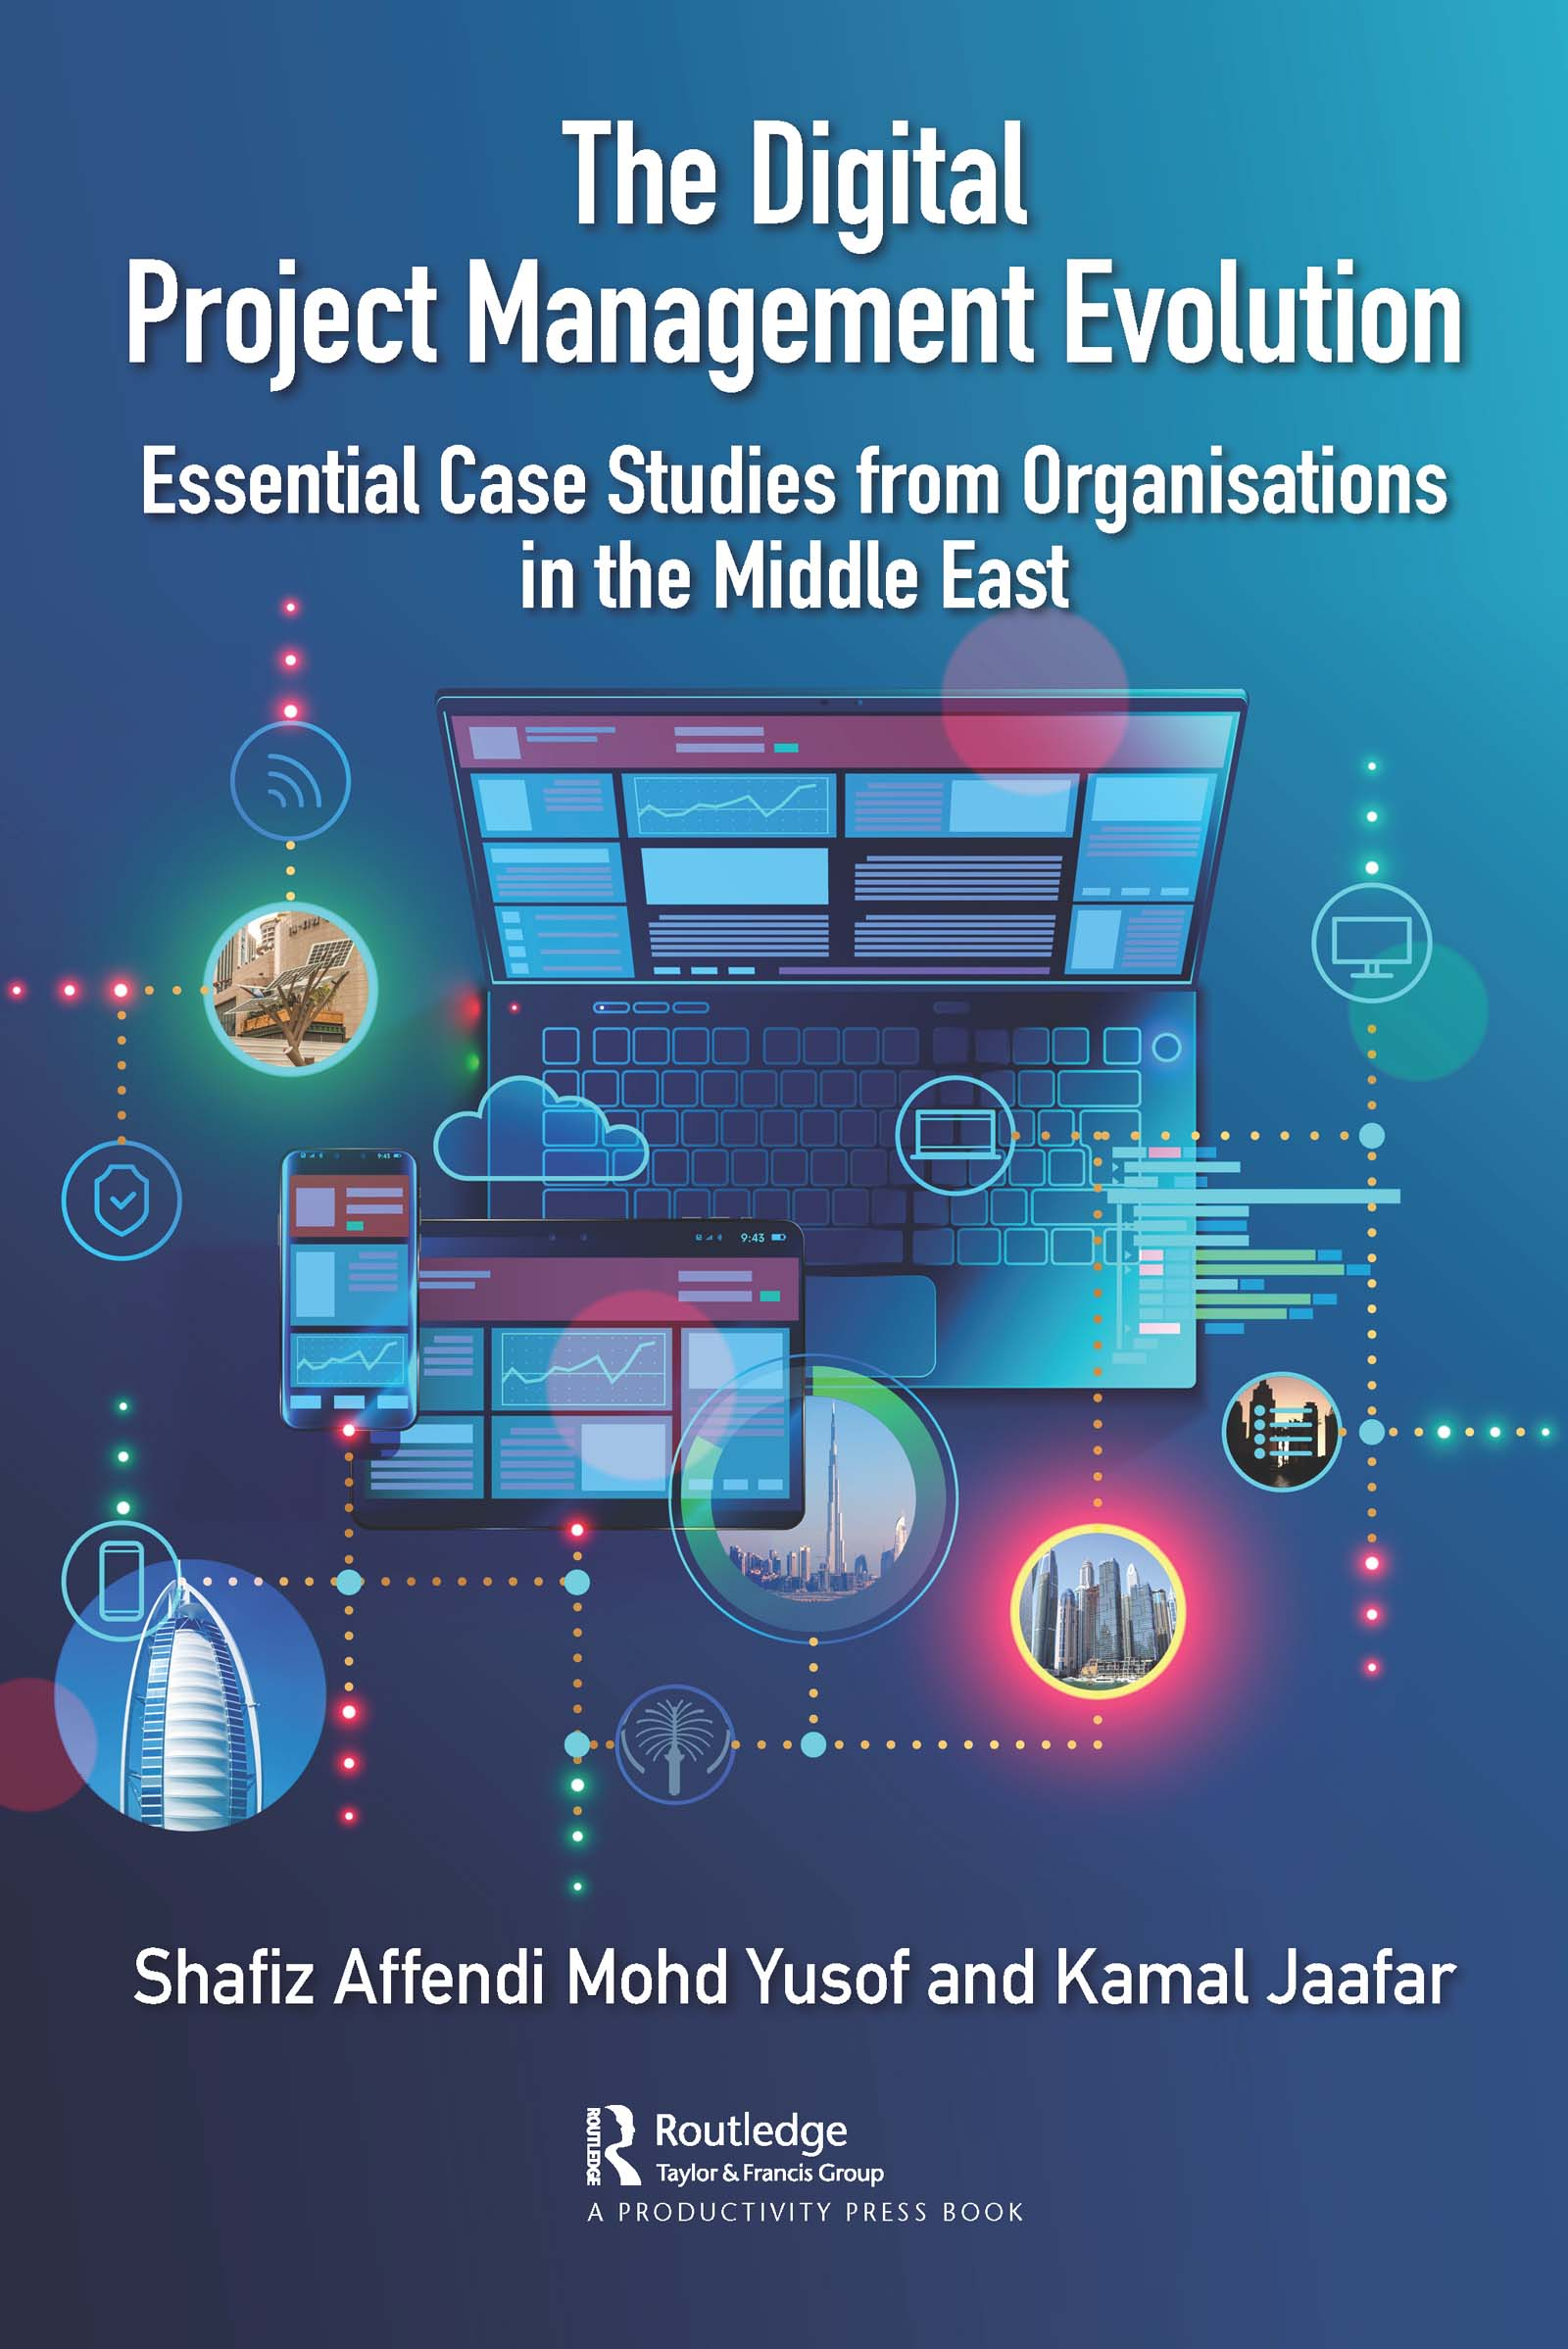 The Digital Project Management Evolution: Essential Case Studies from Organisations in the Middle East book cover